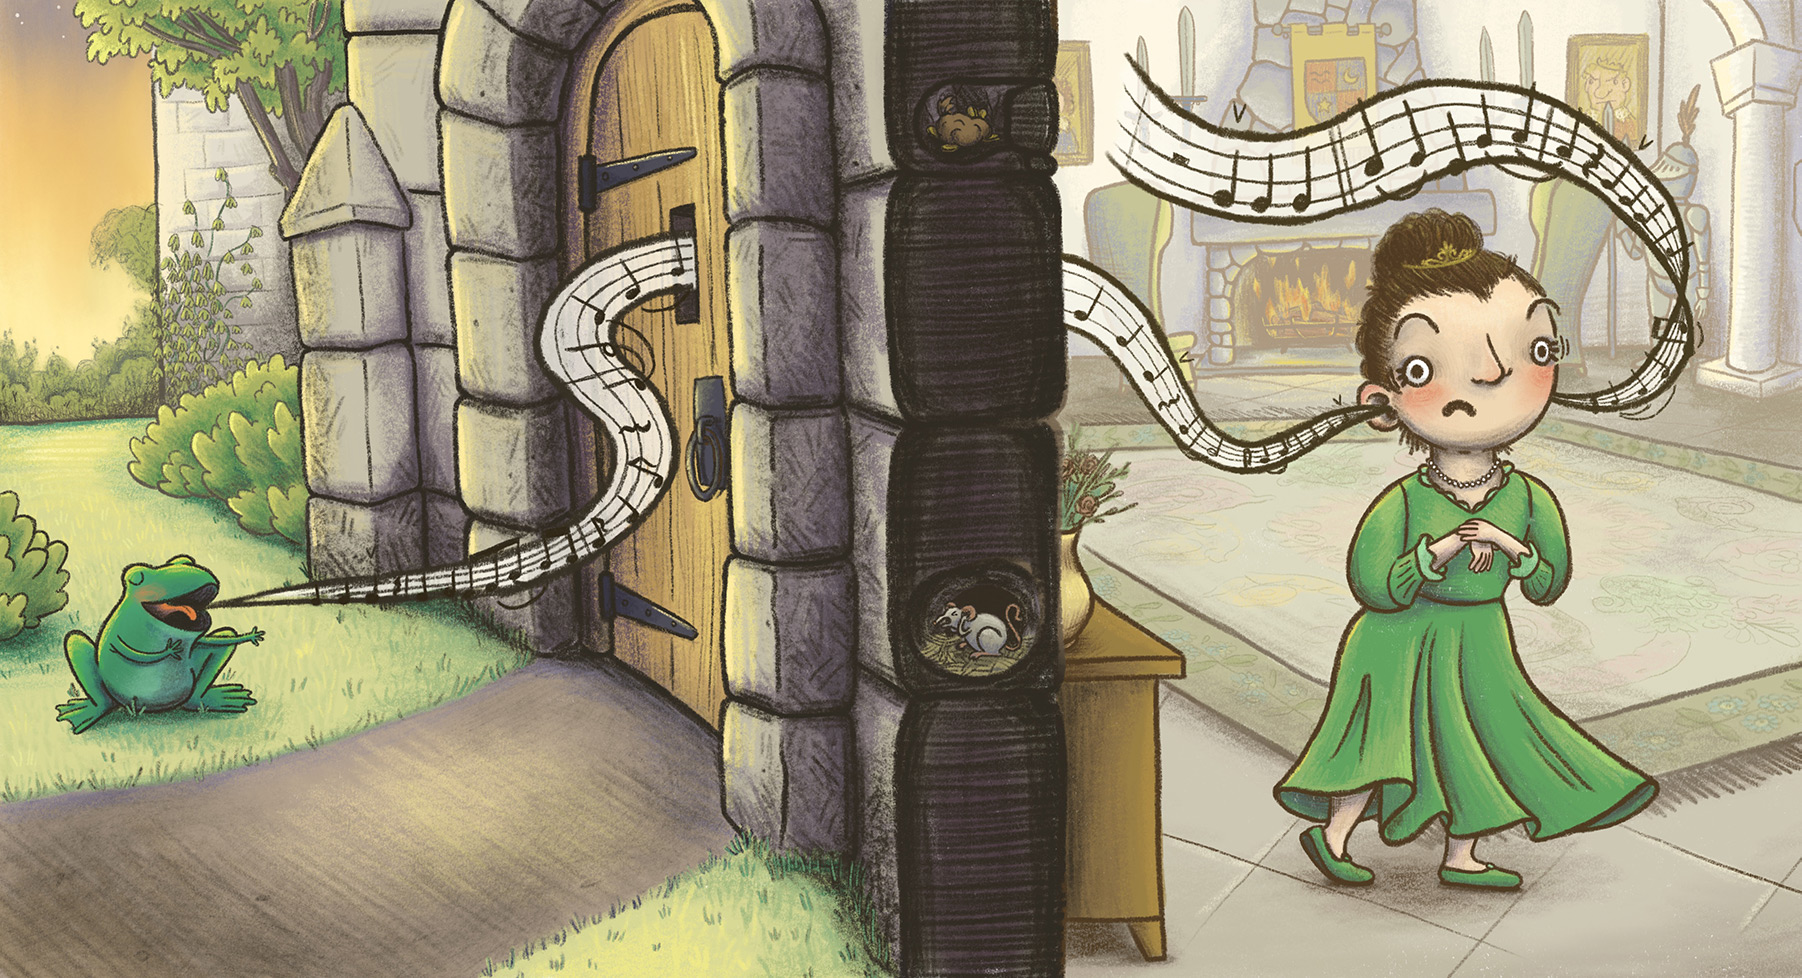 whimsical children's illustration of the frog prince singing to the princess in her castle